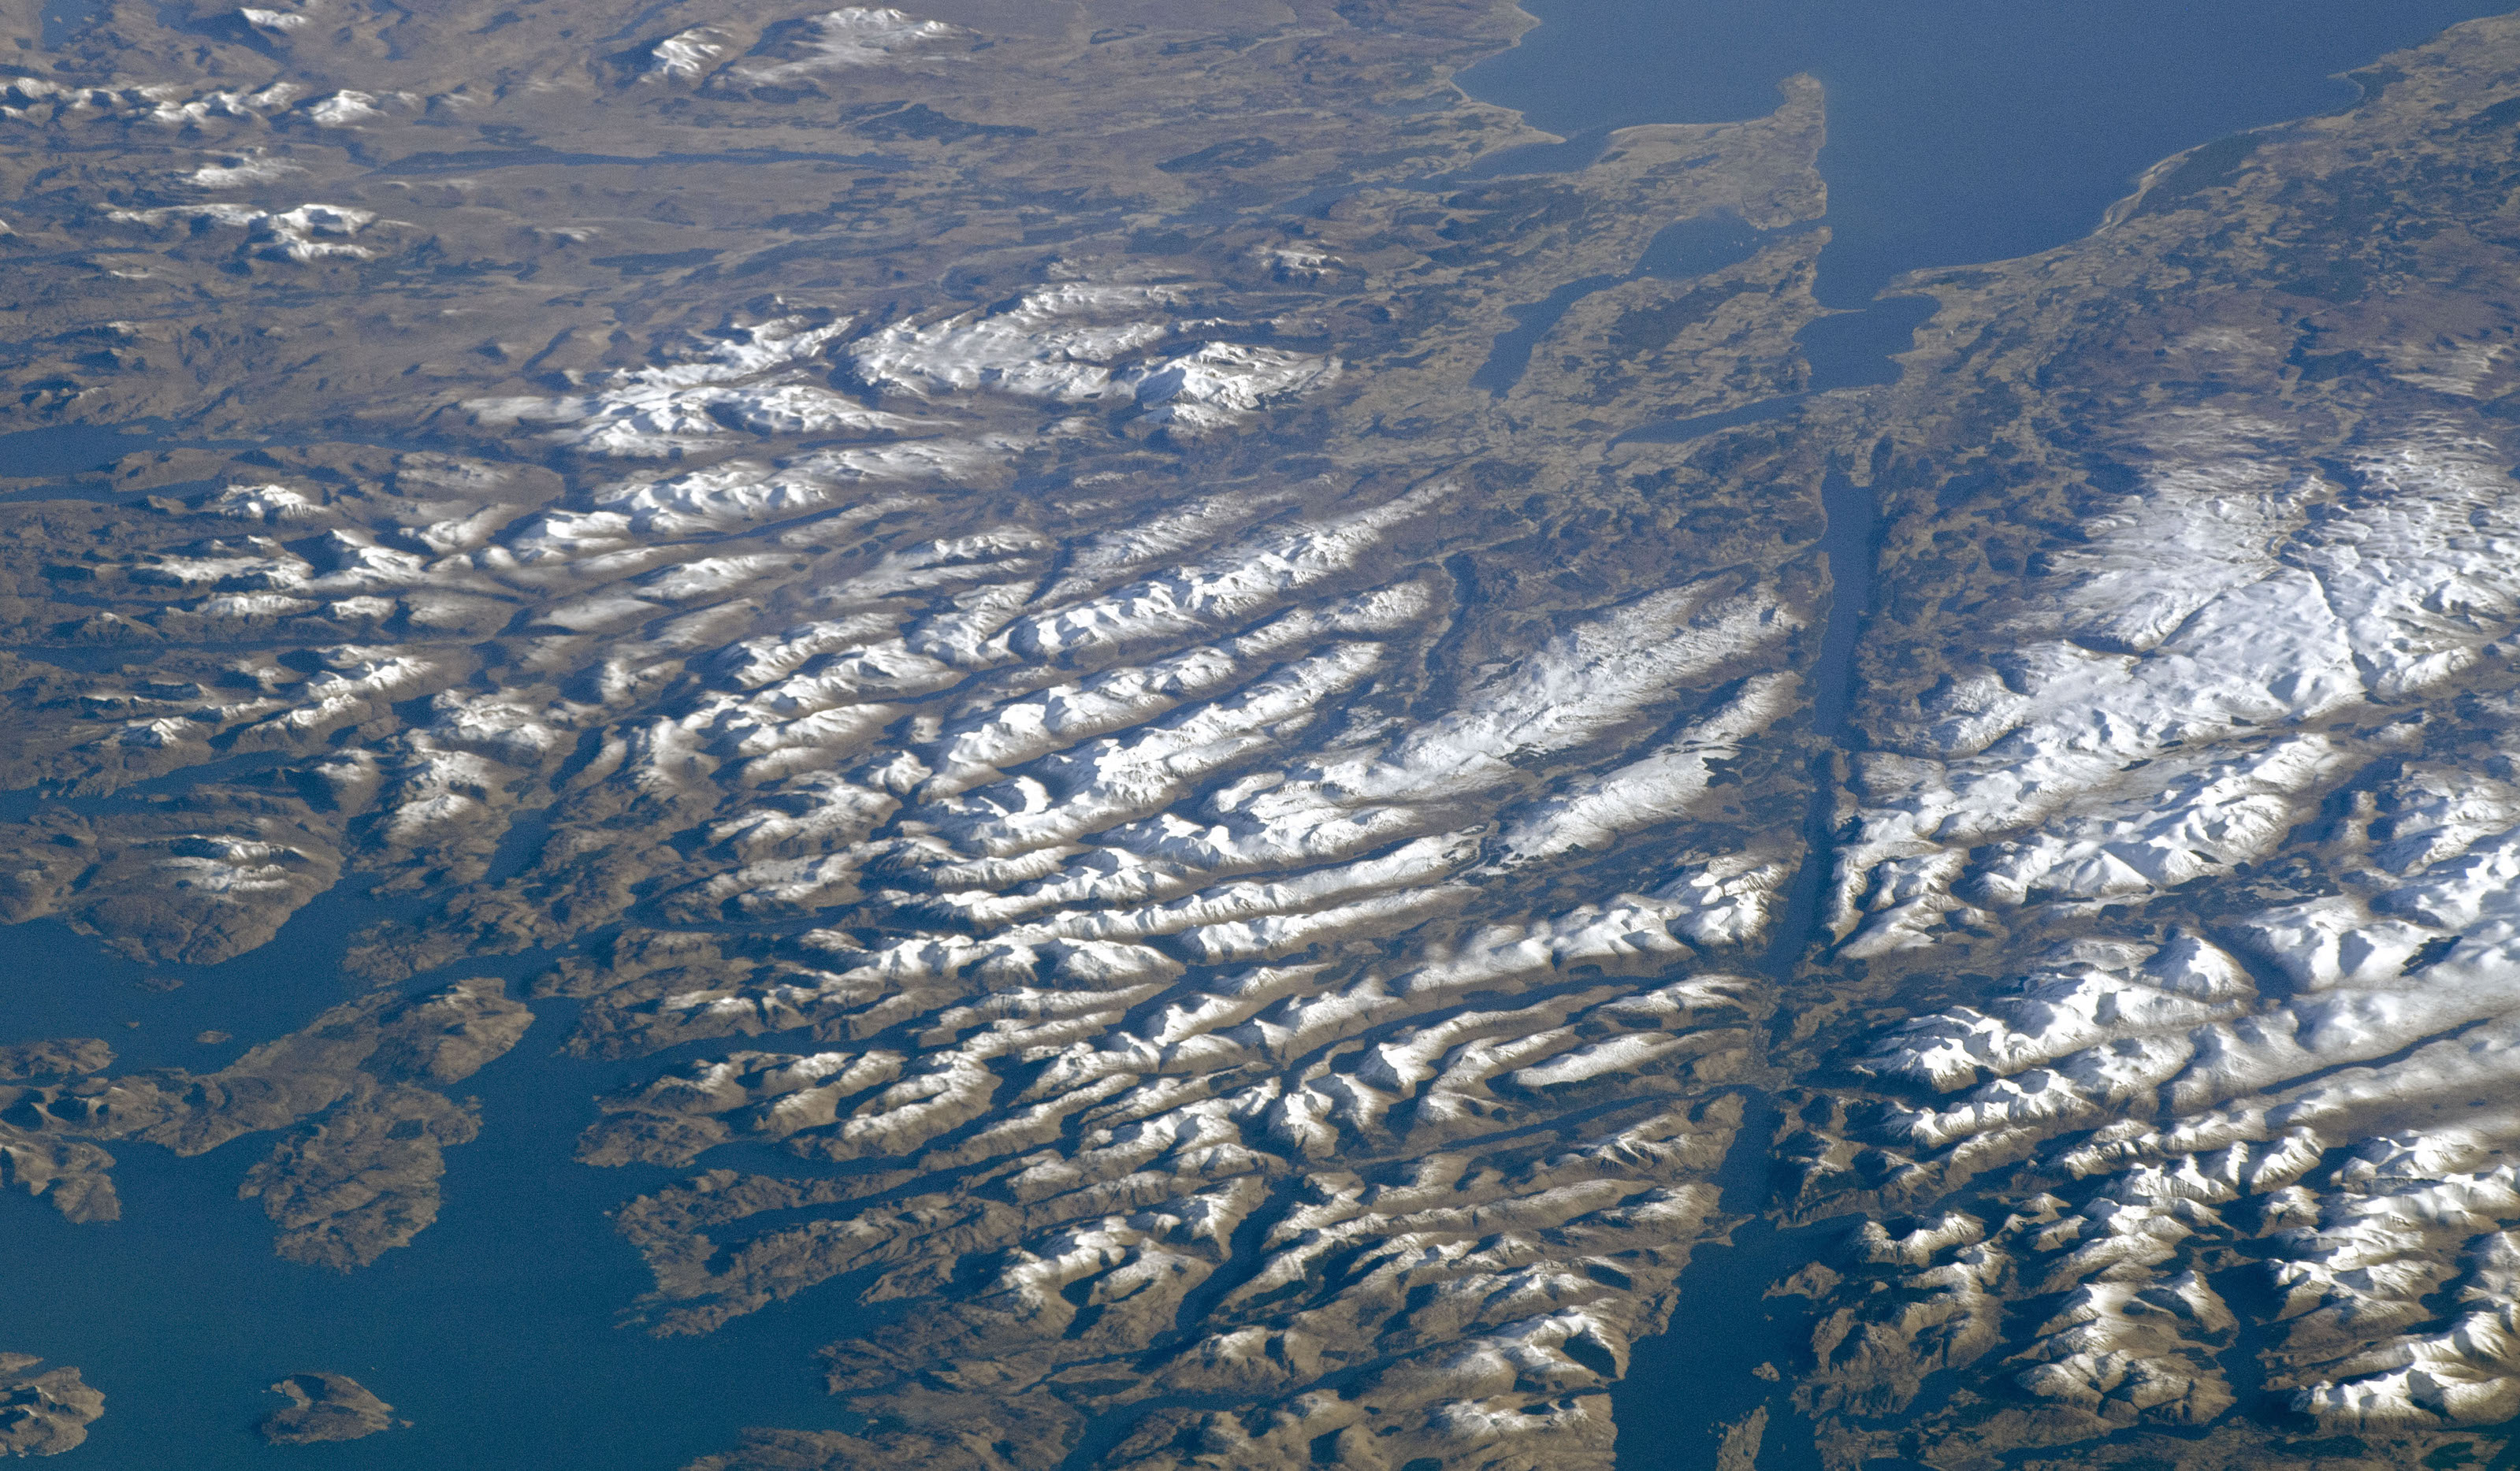 Today's Image of the Day comes from the NASA Earth Observatory and features a look at the Scottish Highlands on a rare clear day.